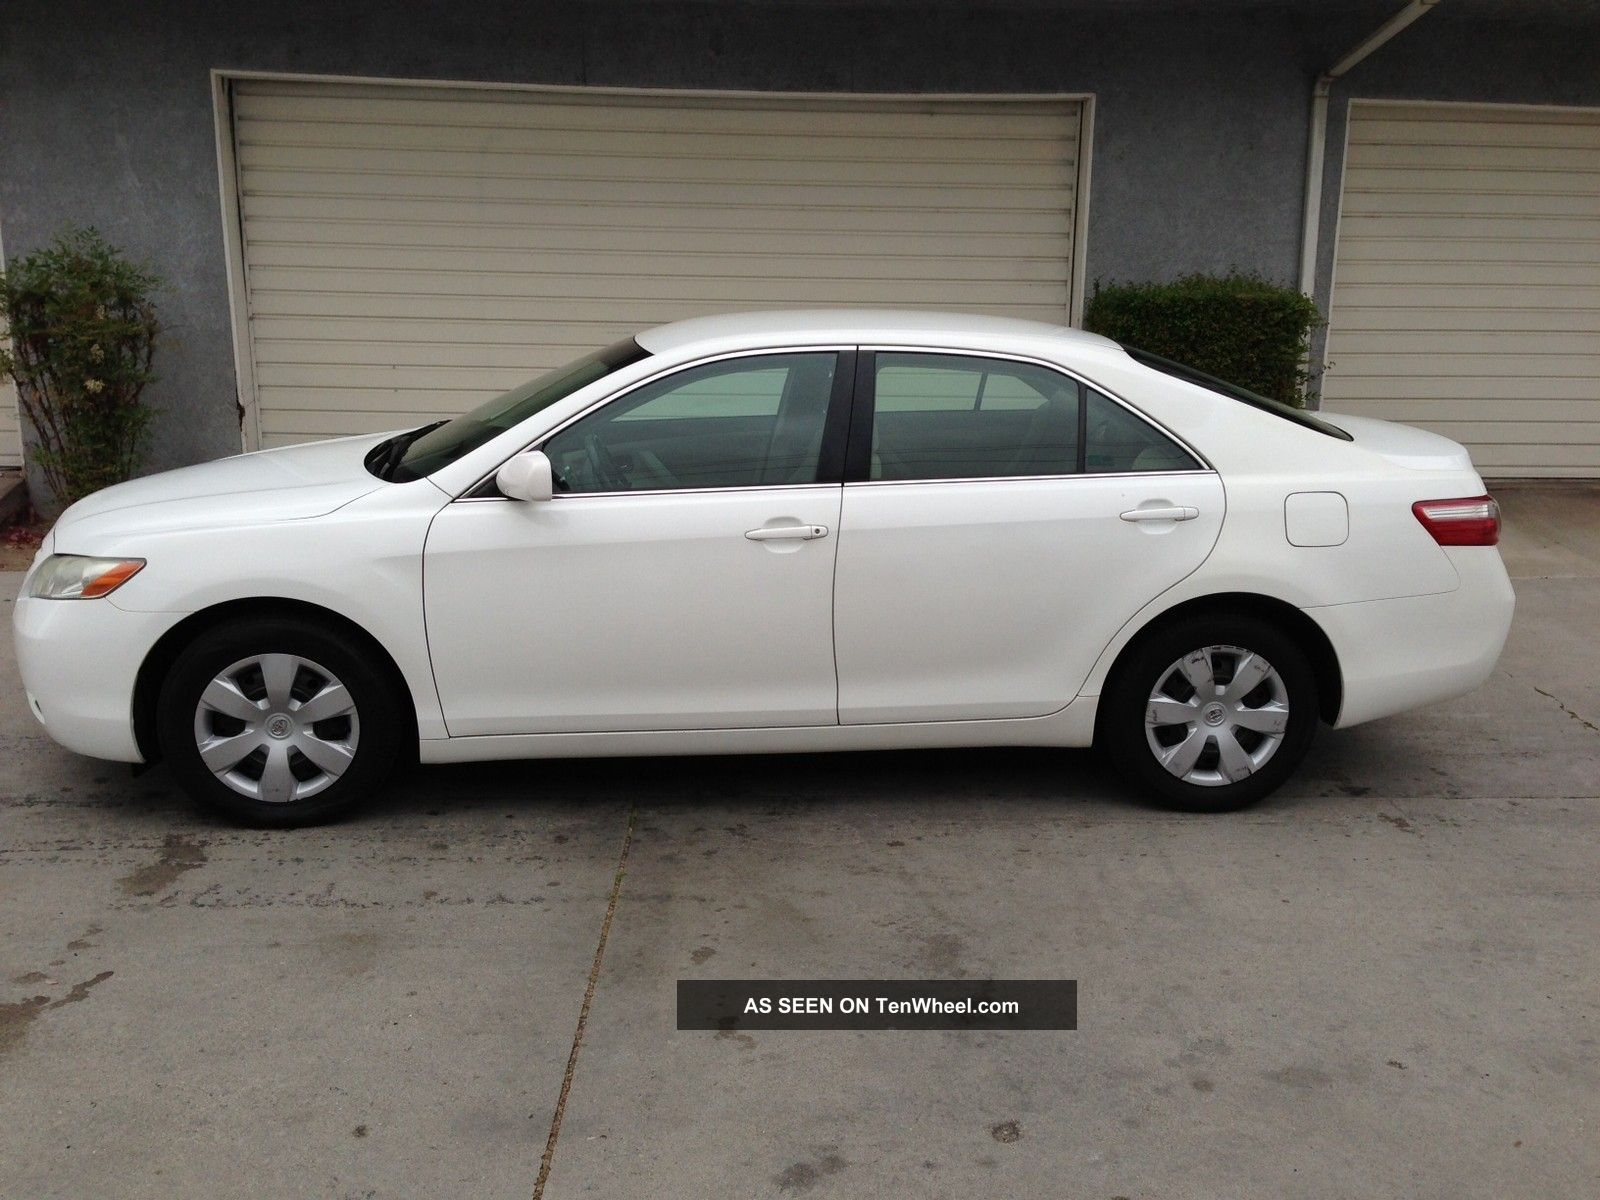 2007 white toyota camry le with extended warrantly. Black Bedroom Furniture Sets. Home Design Ideas